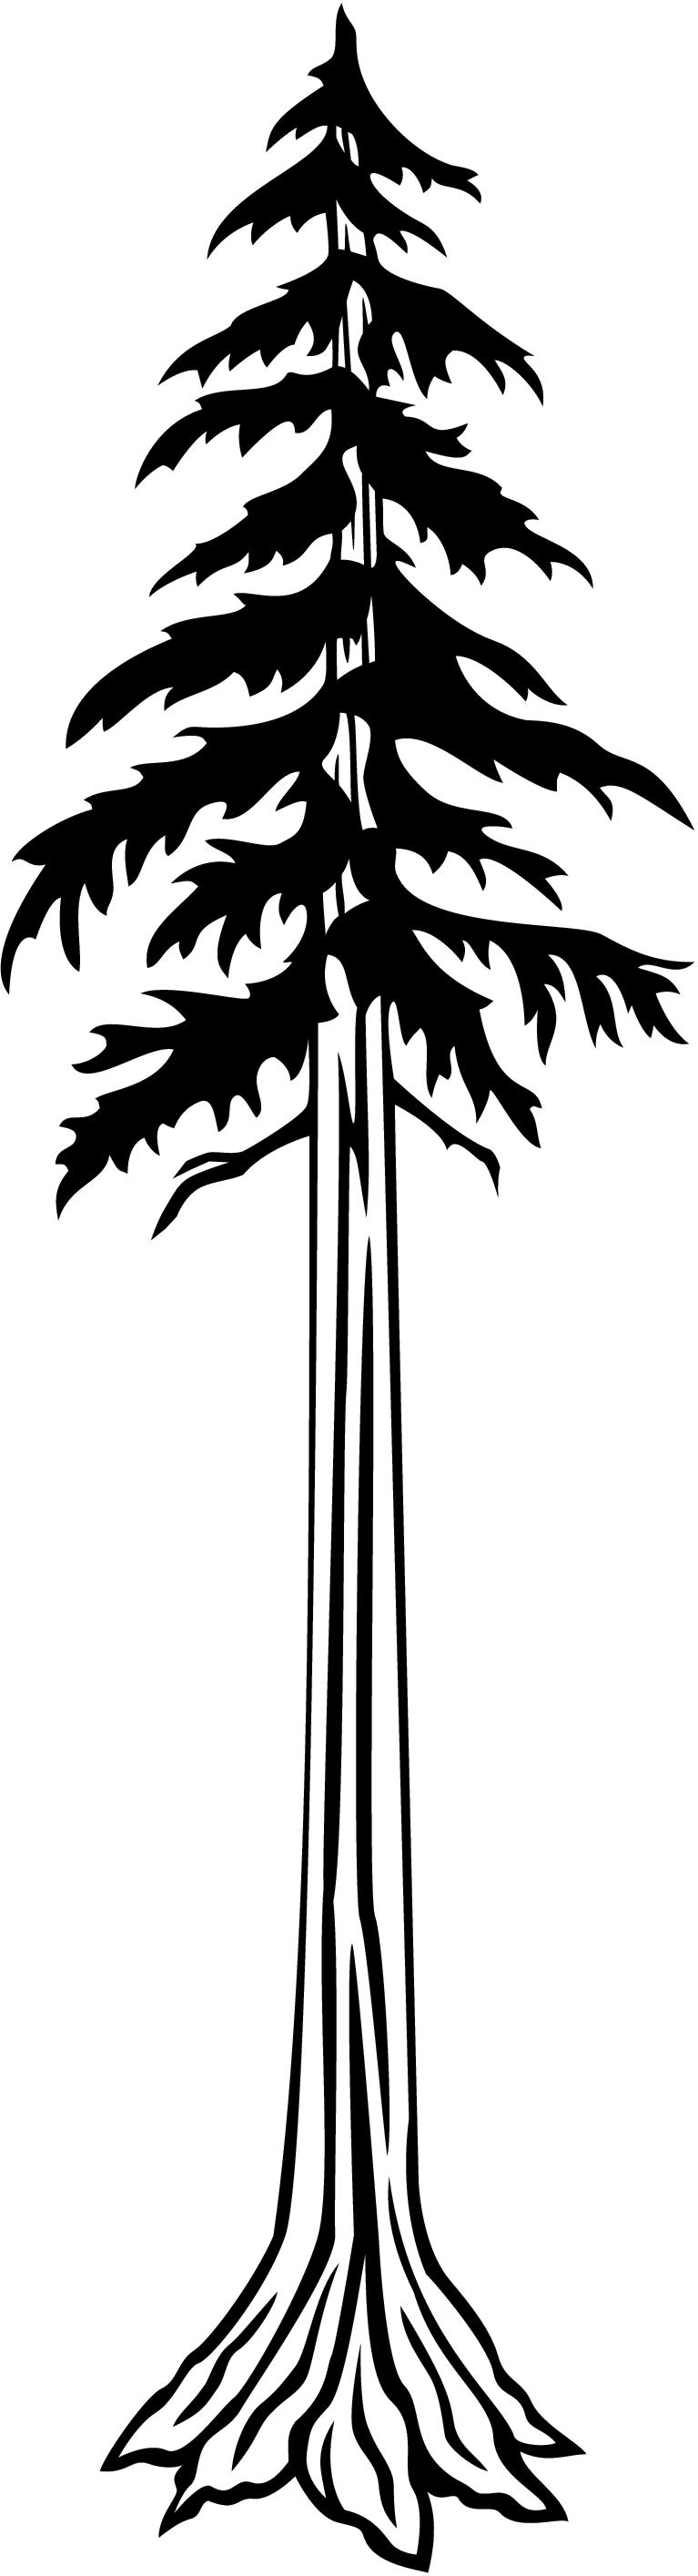 Free Redwood Tree Cliparts, Download Free Clip Art, Free ... clipart transparent